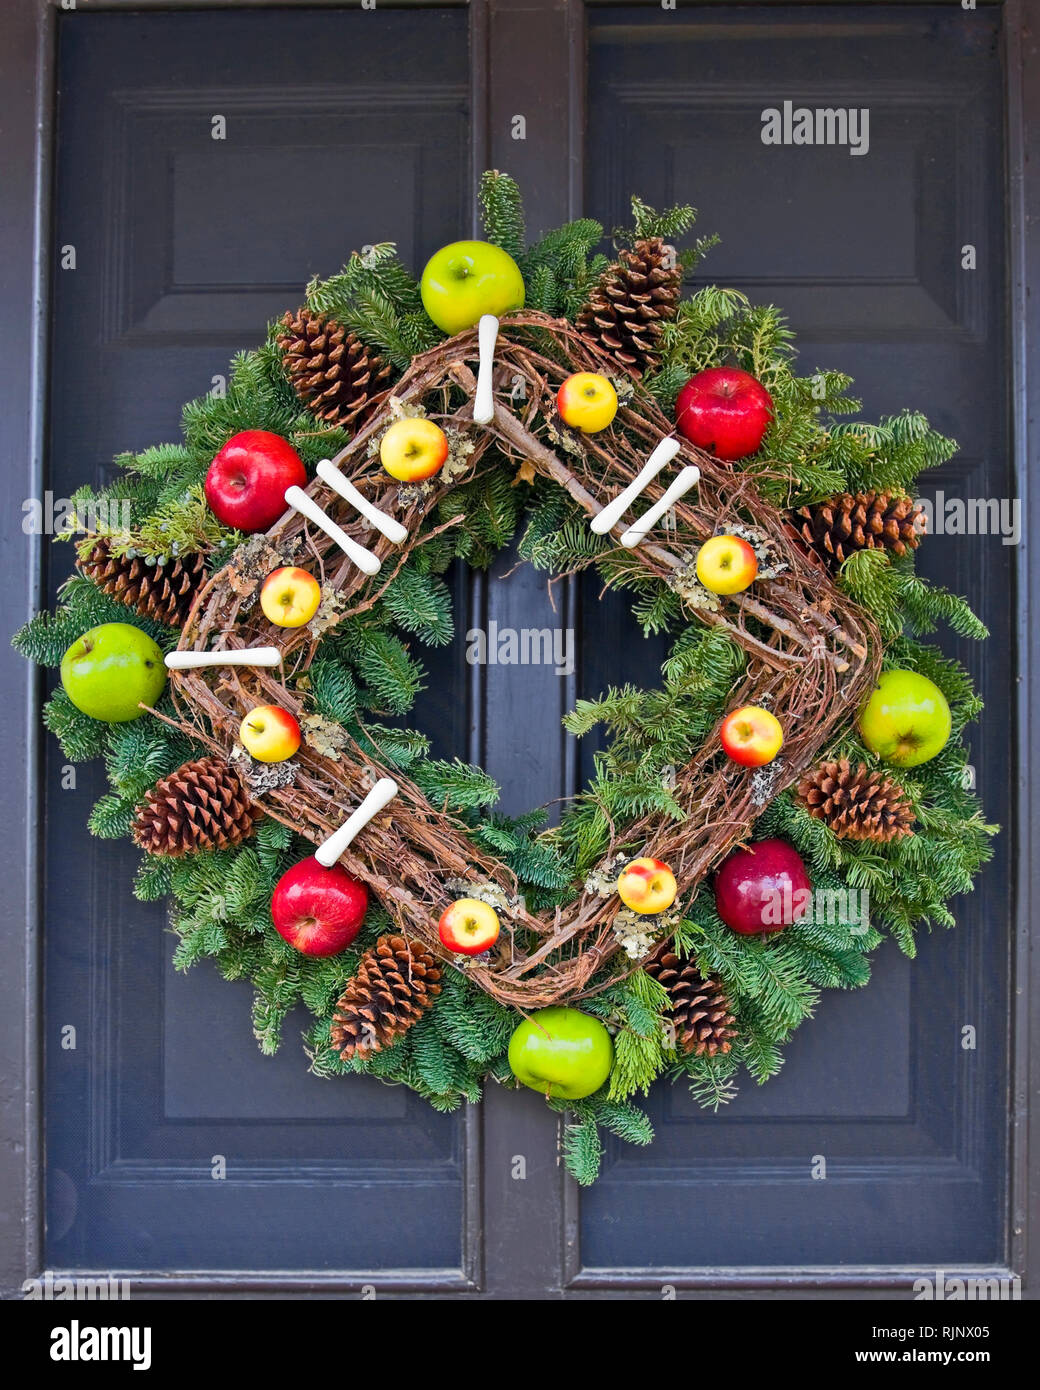 Christmas decoration; square wreath; apples; pine cones; evergreens; grapevines; hung diagonally; black door, holiday; festive; unique; colorful; vert - Stock Image